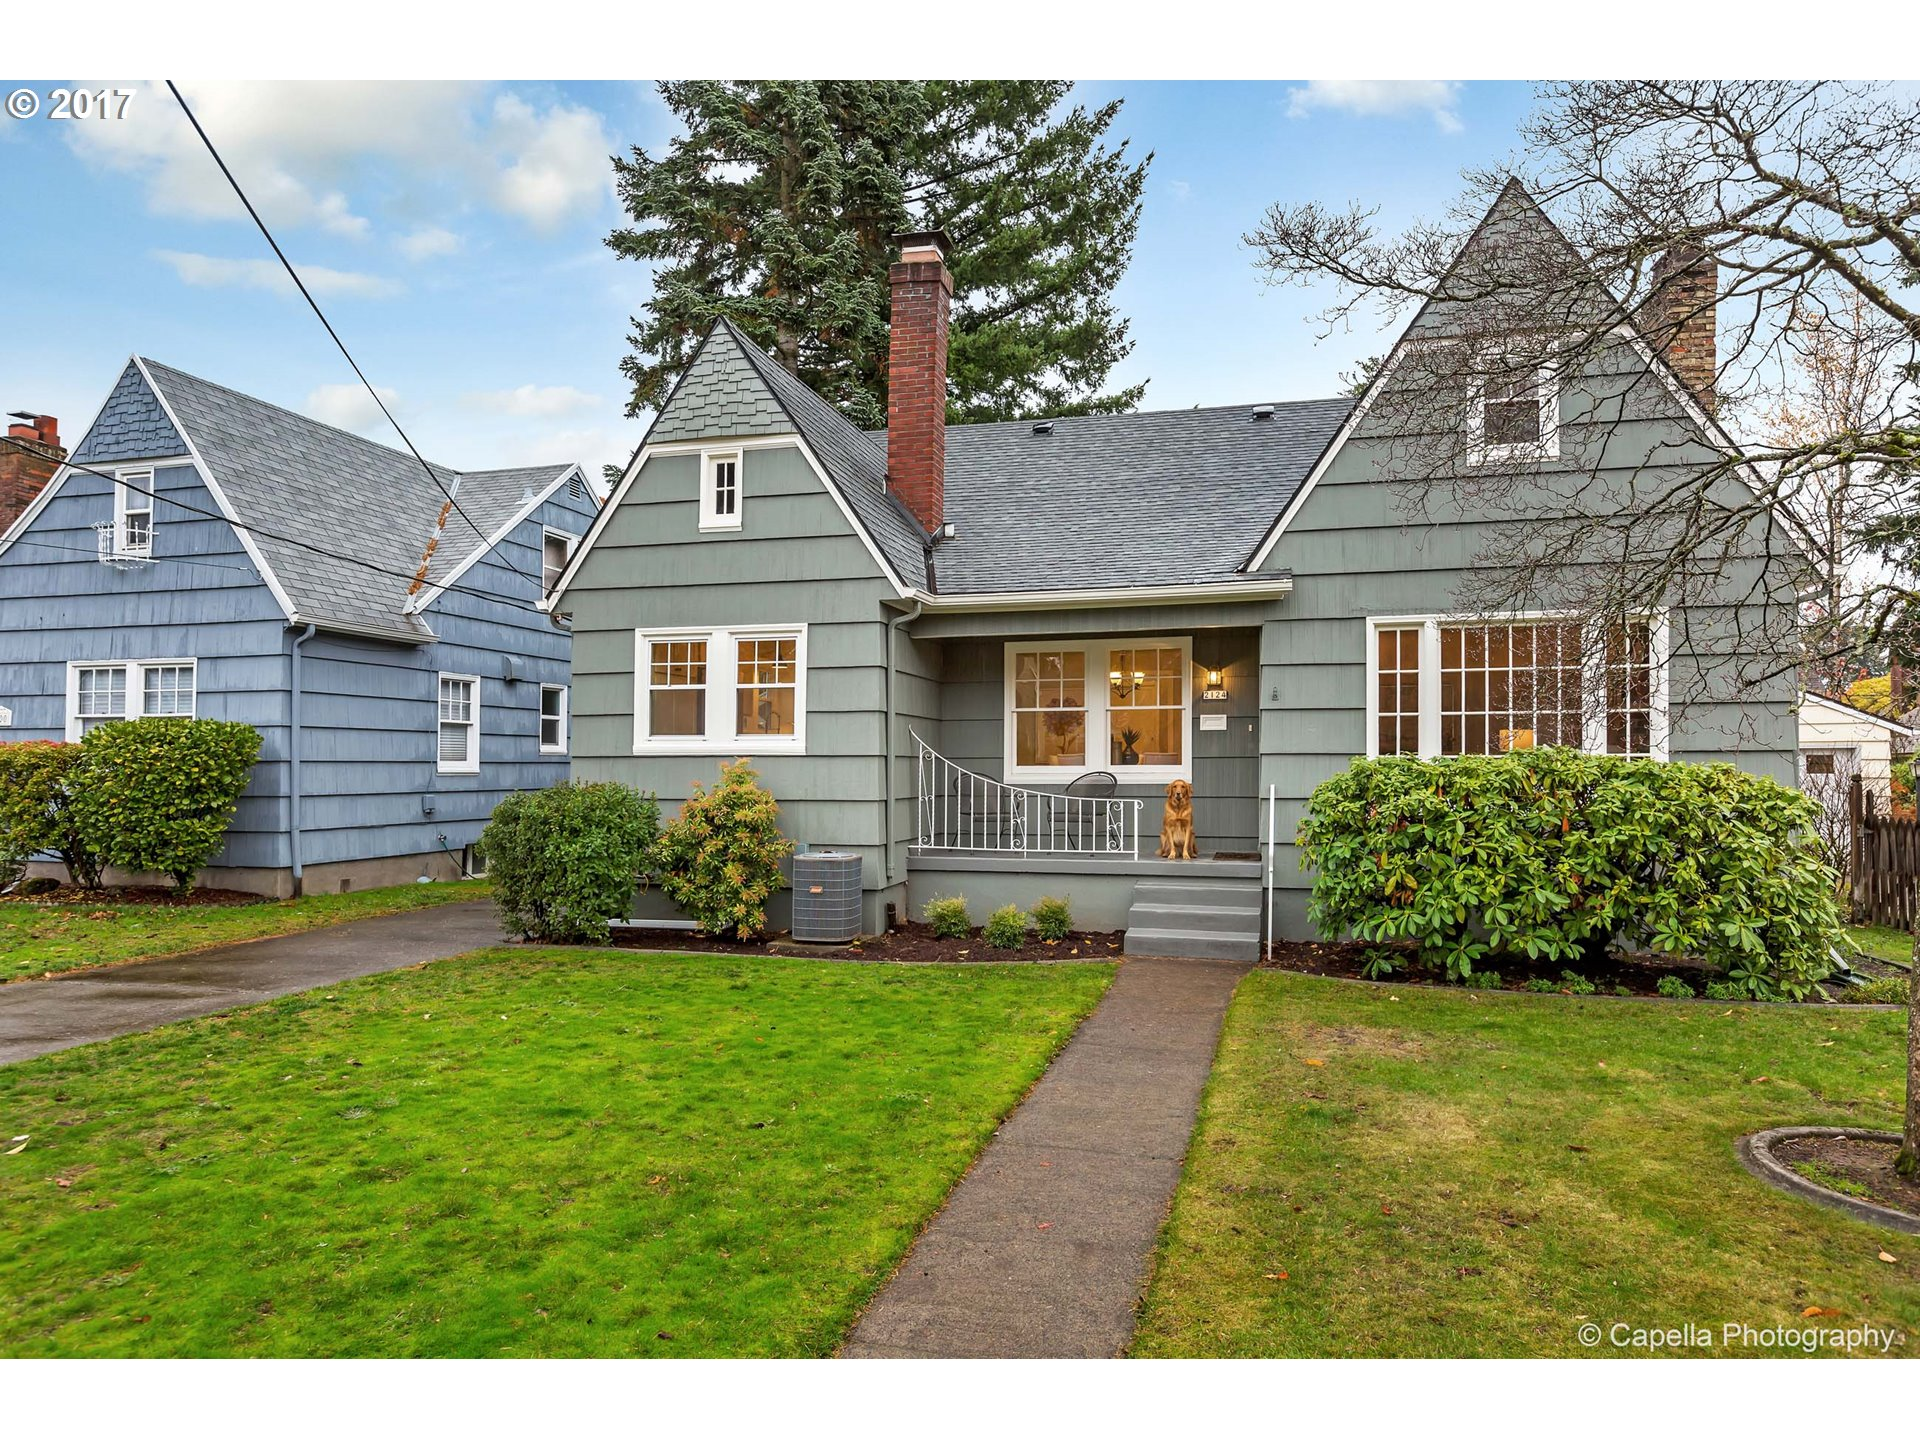 OPEN 11/18-19 11-2. Meticulously restored and updated +3k sqft home in Rose City Park has beautiful original charm and high-end modern updates. Bright + spacious open layout on main w/ built-ins, modern farmhouse kitchen, fireclay apron sink, quartz, nook. Truly special mstr suite w/ double shwr + large walk-in. New plumbing, high eff. furnace/AC/wtr htr.  Great vibes in a great hood and 1 block to the park! Owner is licensed OR broker.